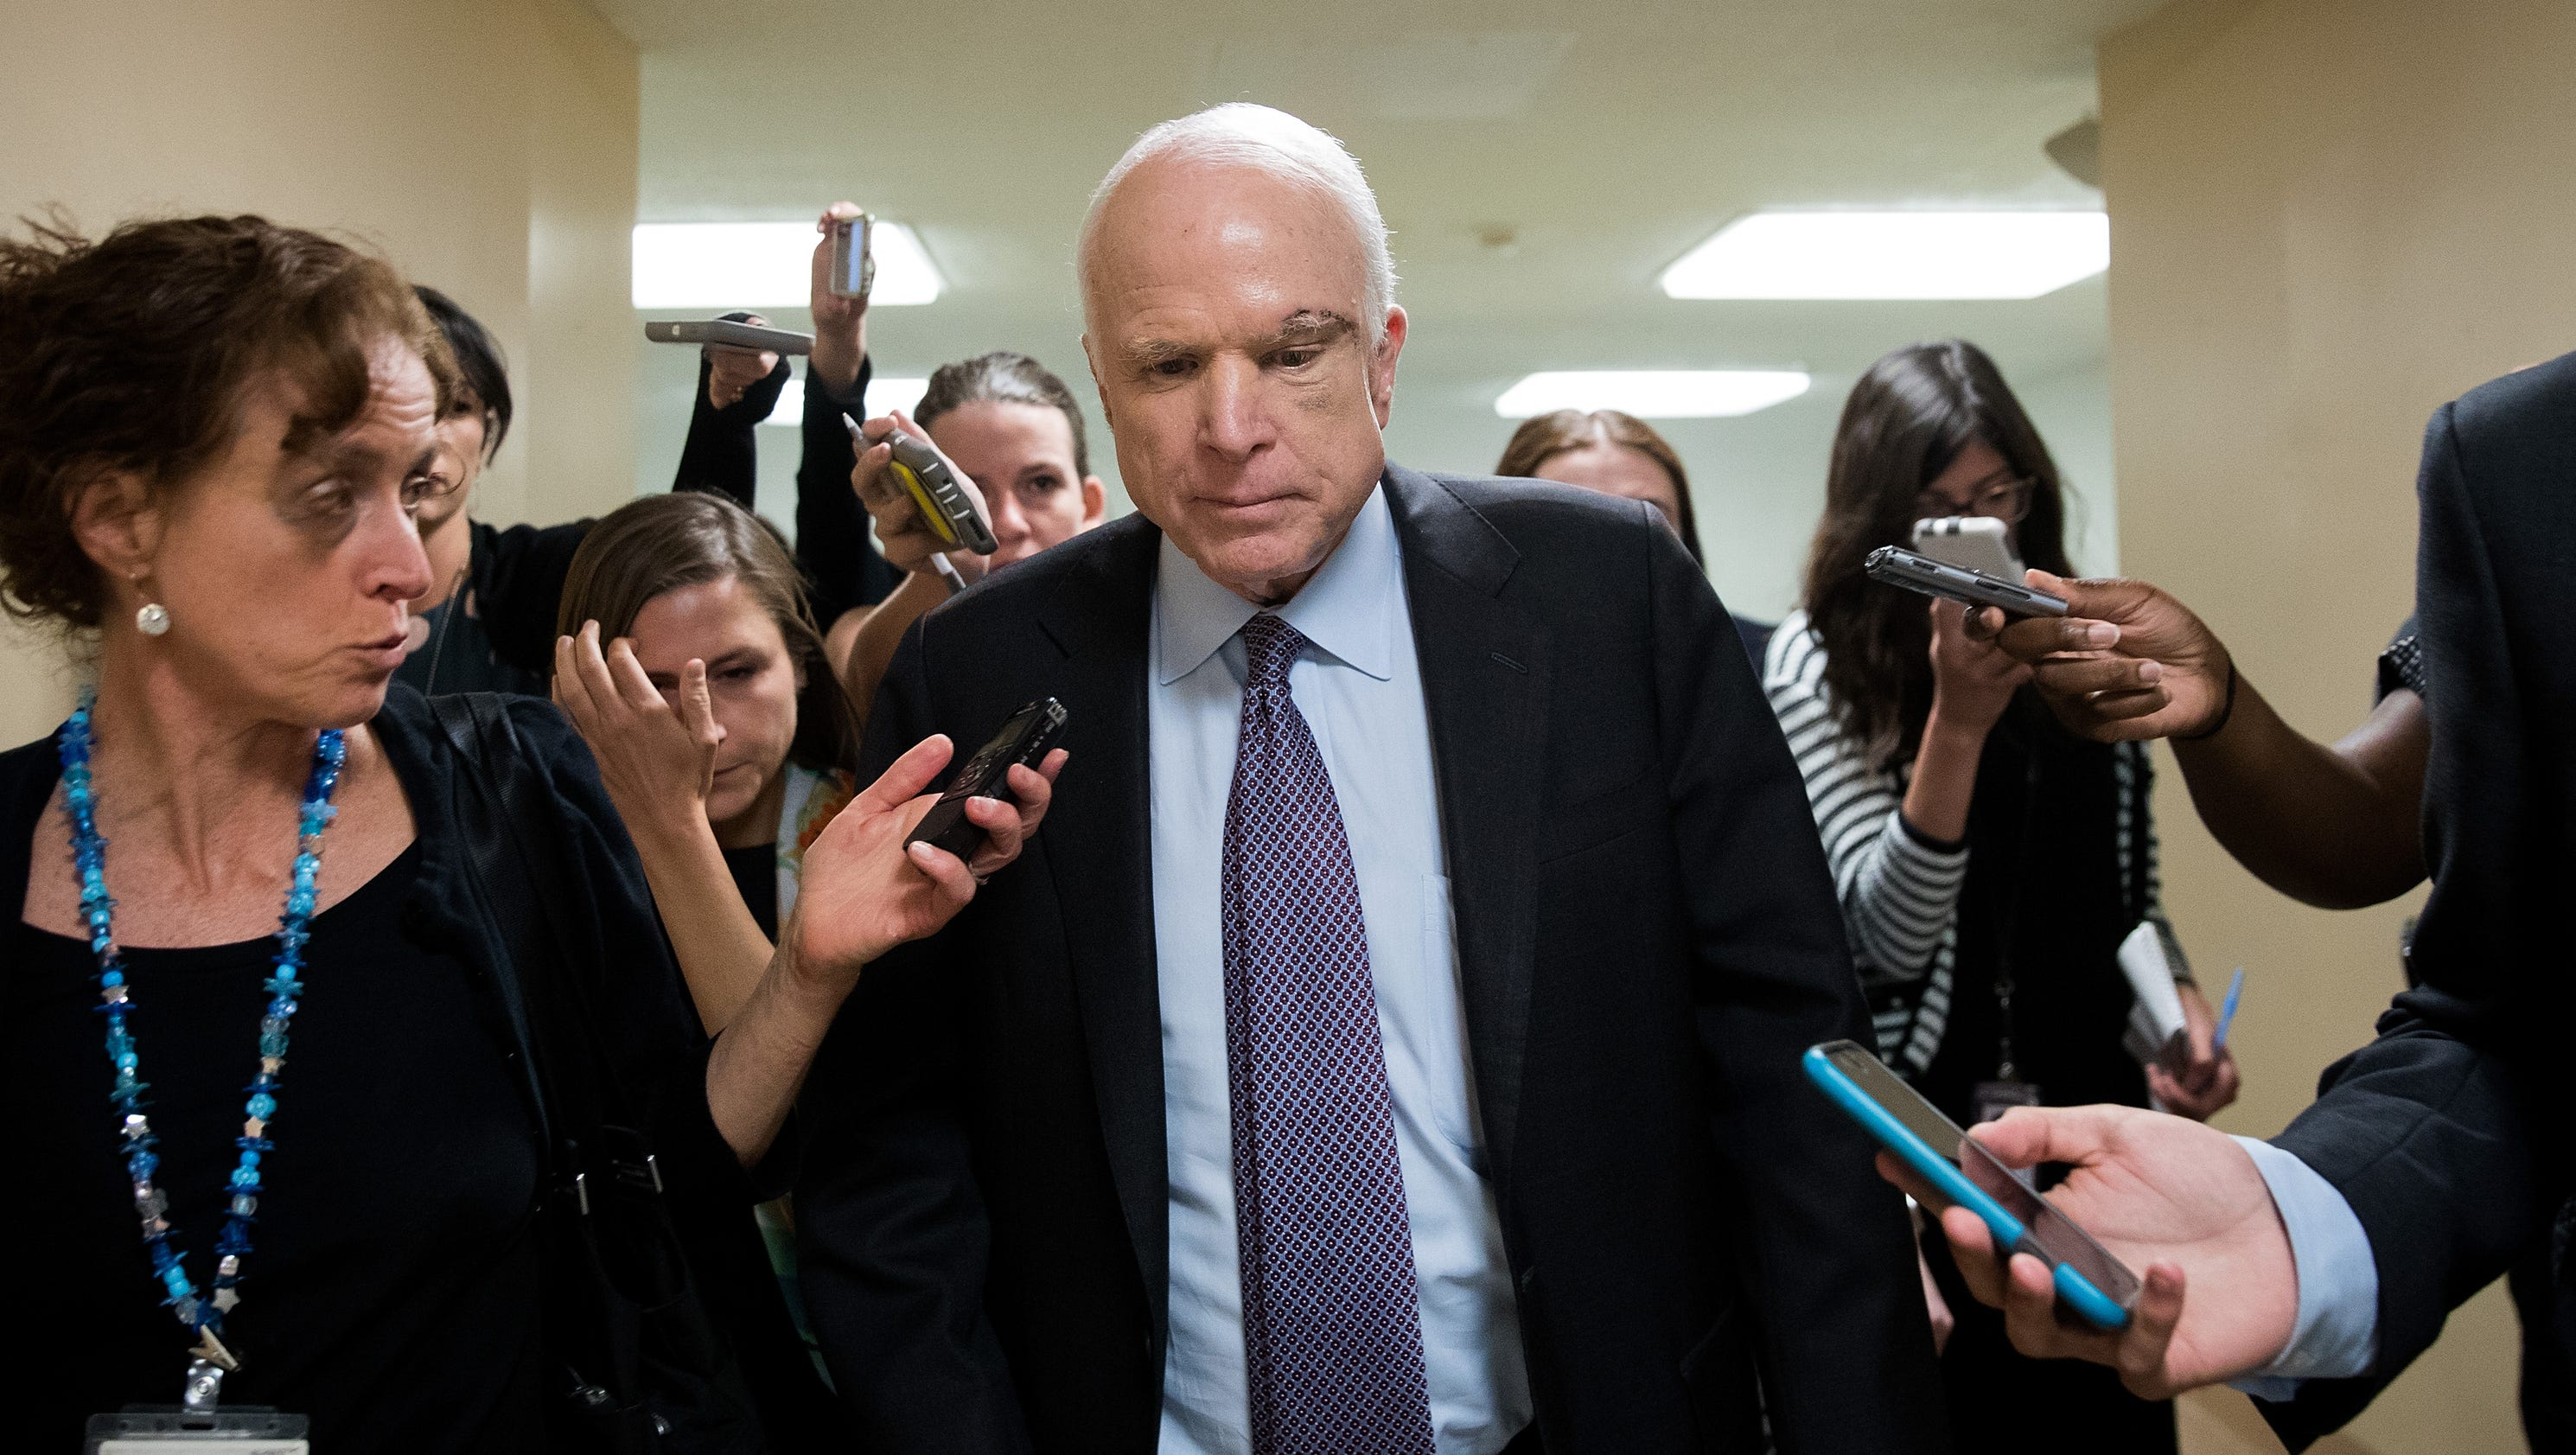 The Bubble: McCain no hero, conservatives and liberals say